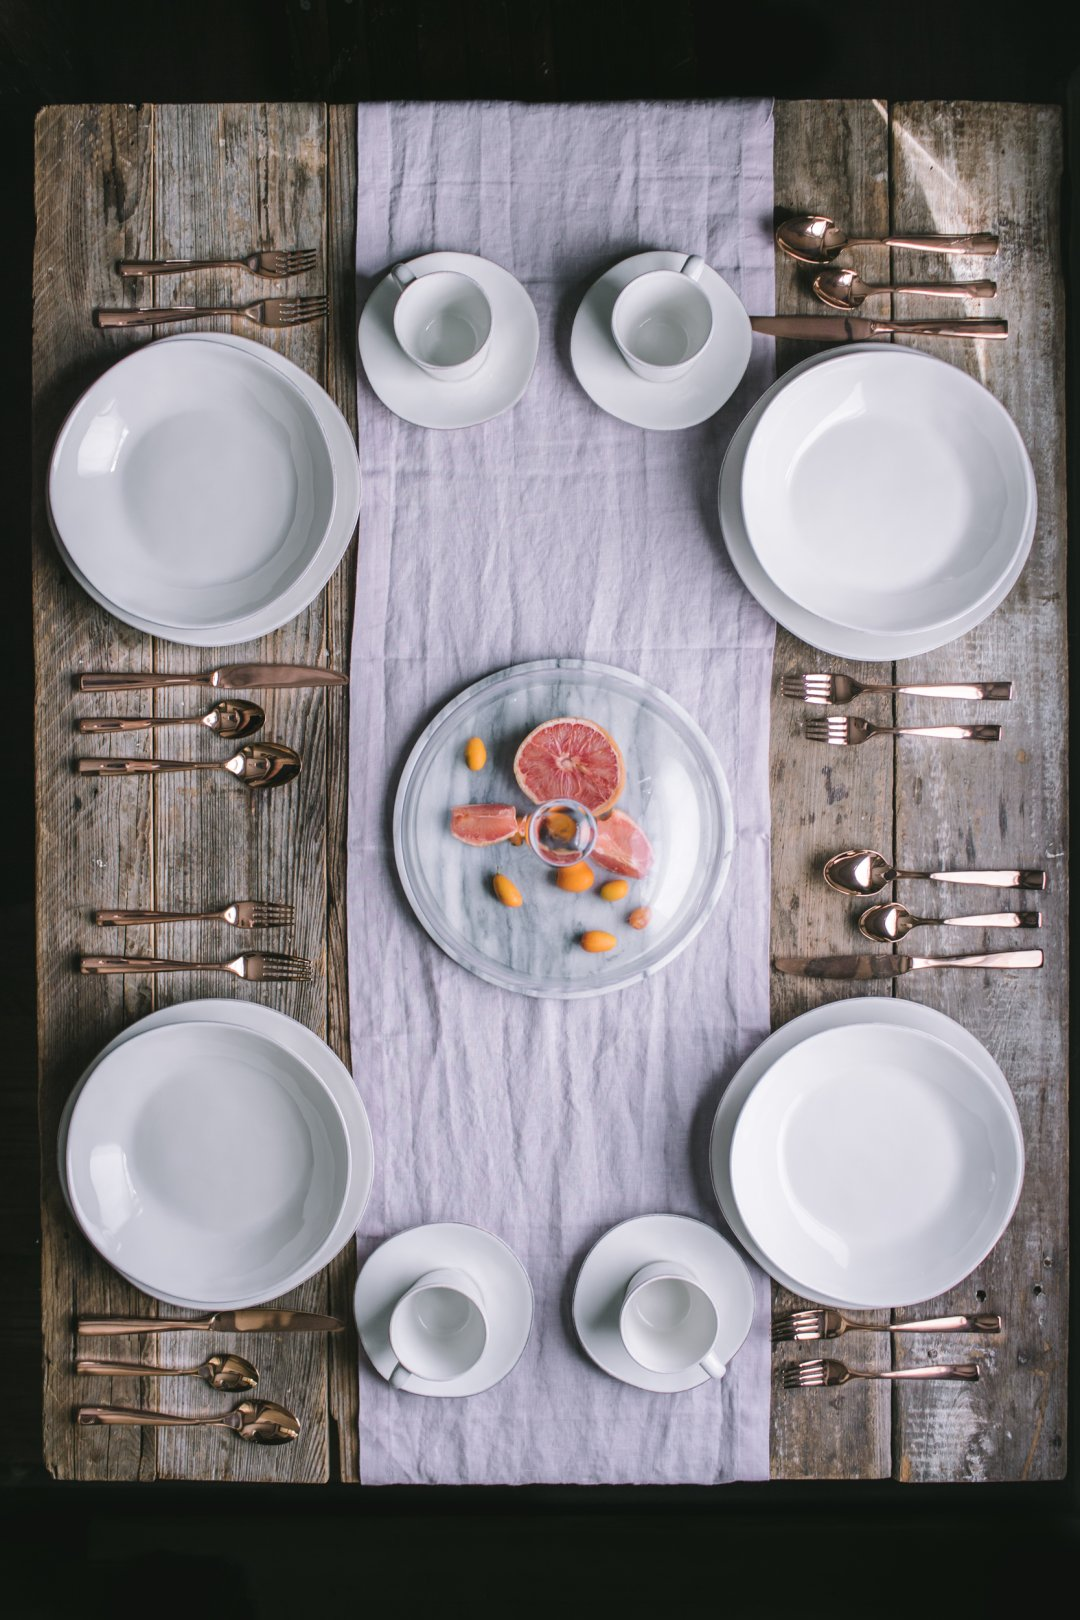 Overhead view of table set with white dinnerware, gold flatware, and a light purple table runner